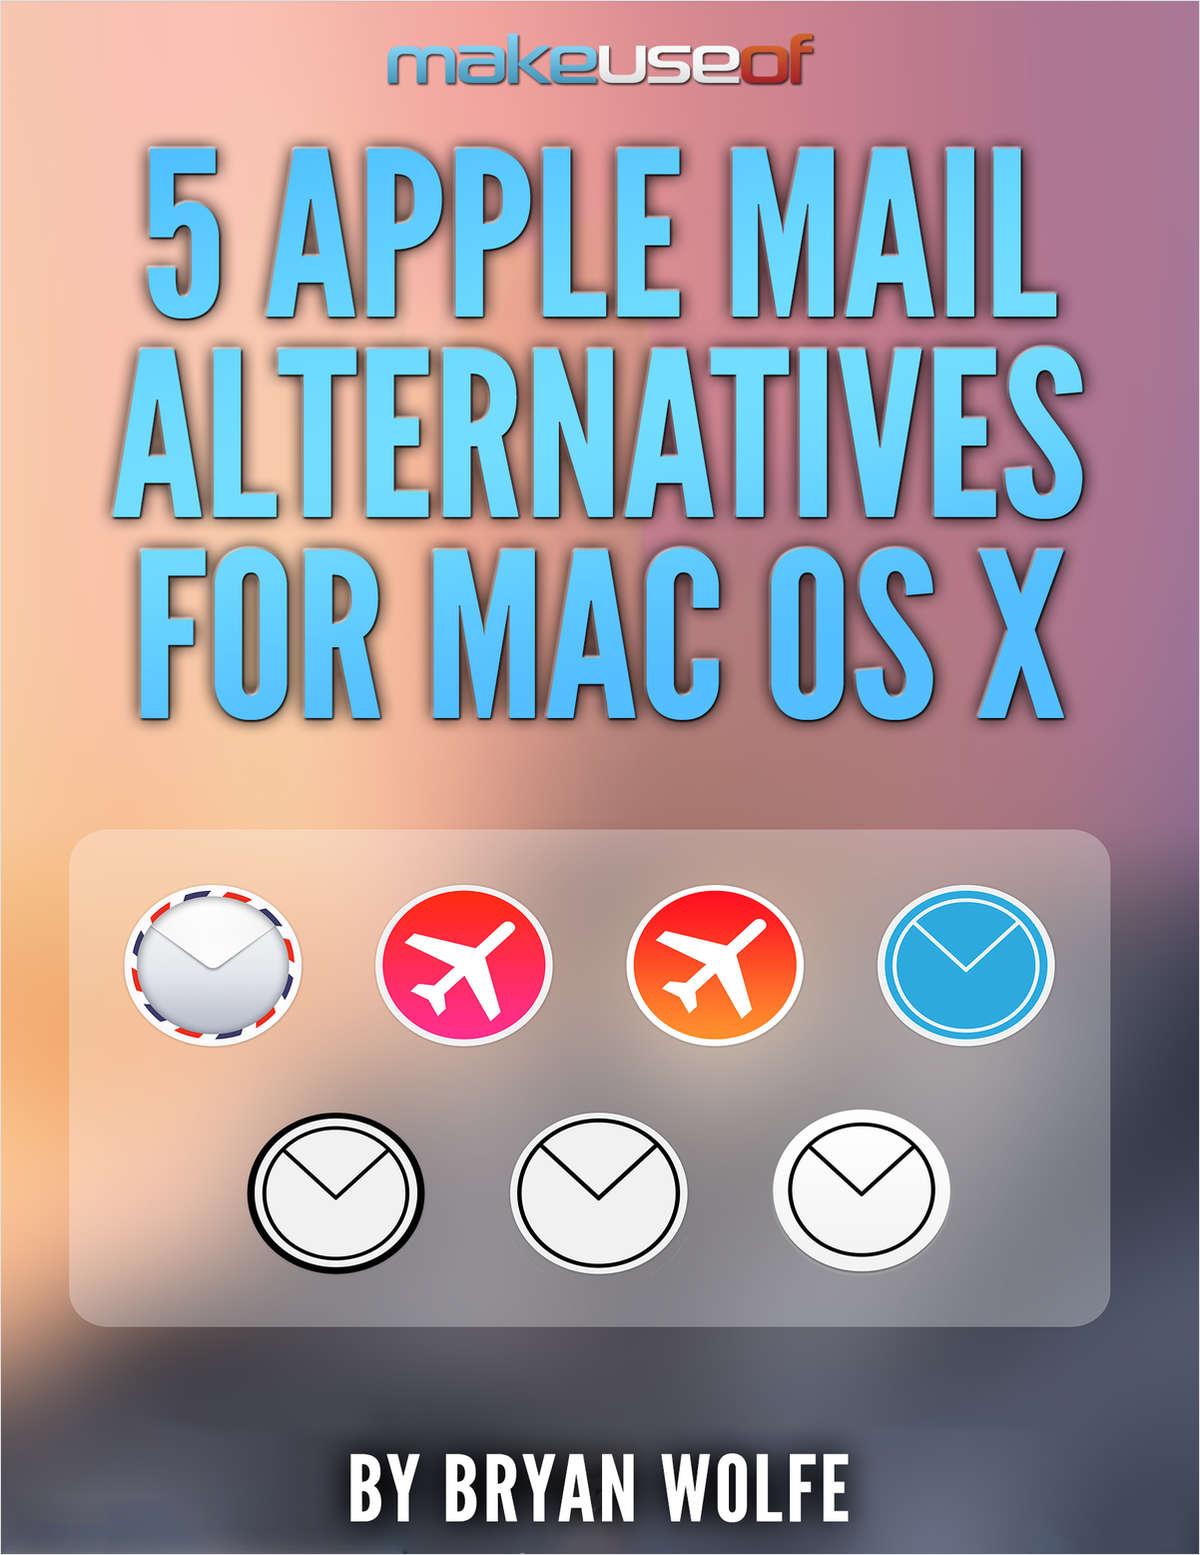 5 Apple Mail Alternatives for Mac OS X